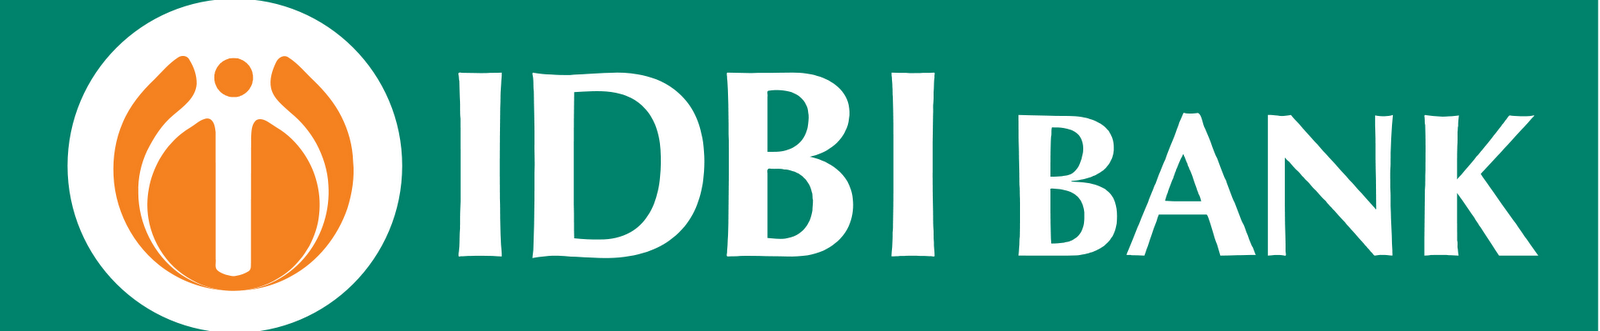 IDBI Executive Online Examination Call Letter Out 2015-16